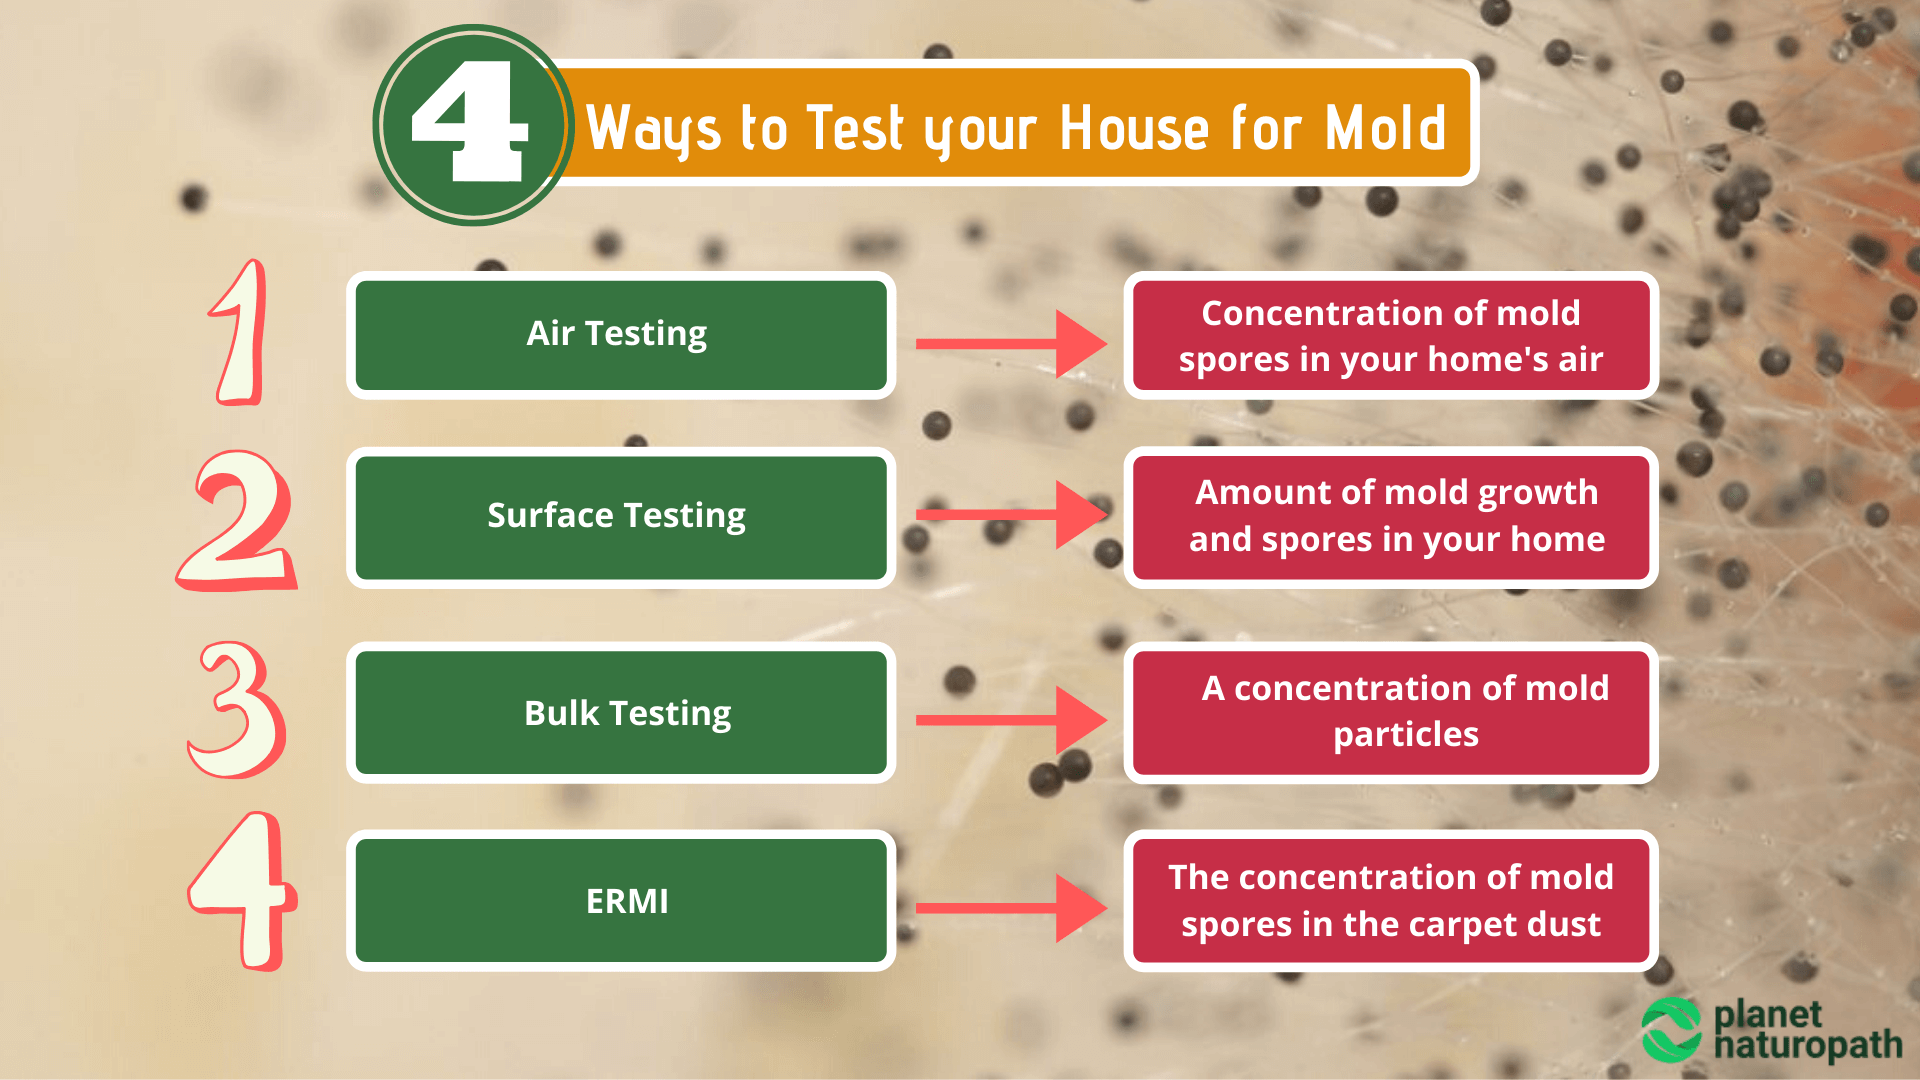 4-Ways-to-Test-your-House-for-Mold